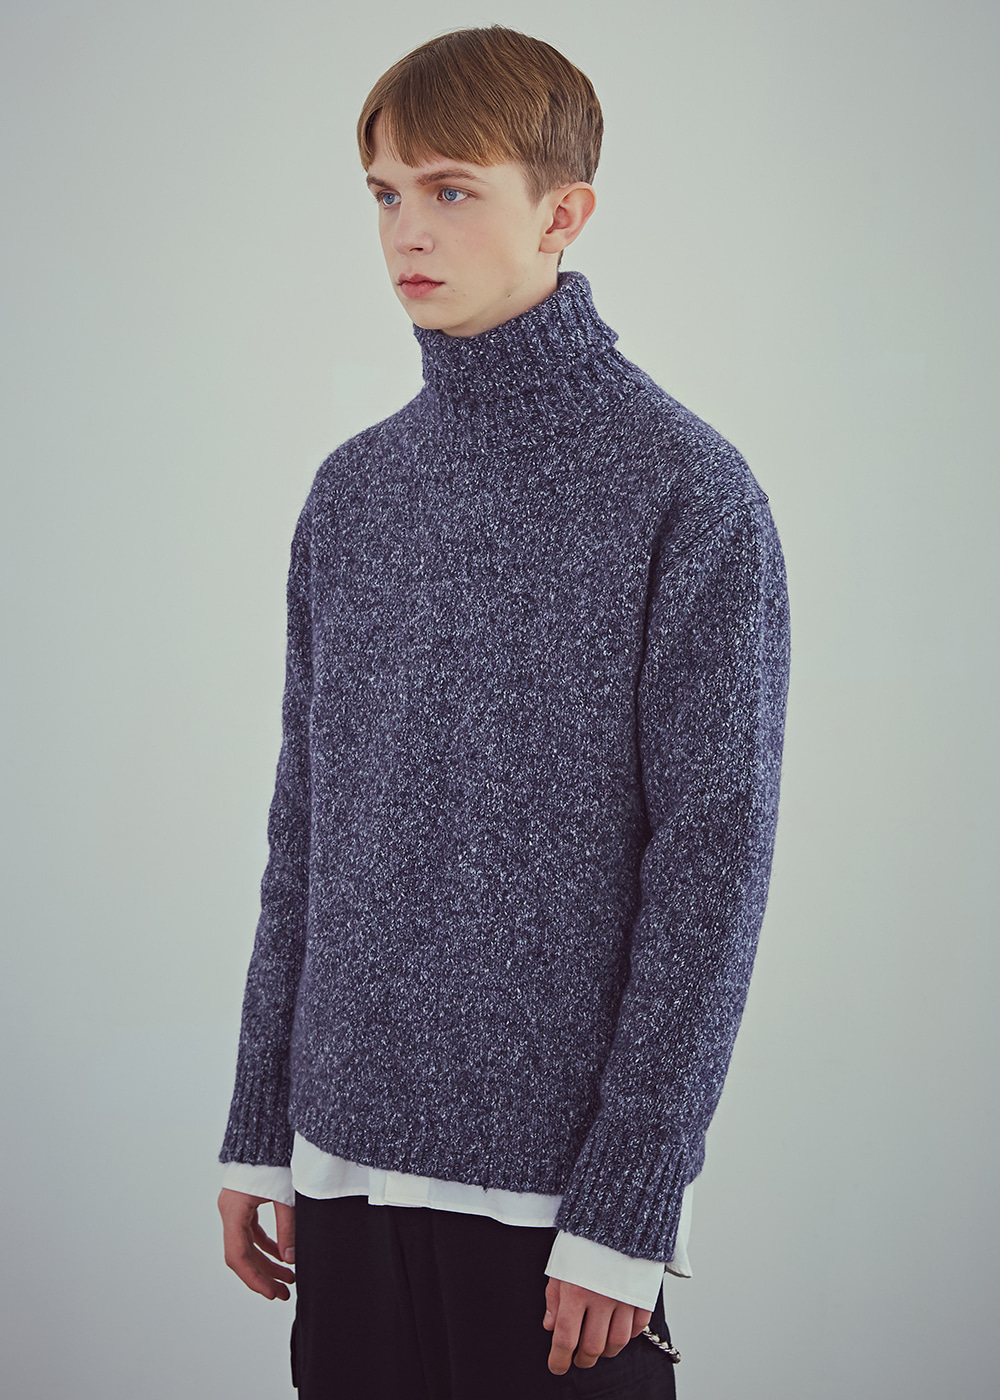 Blank Wool-Blend Roll-neck Sweater - Melange Navy